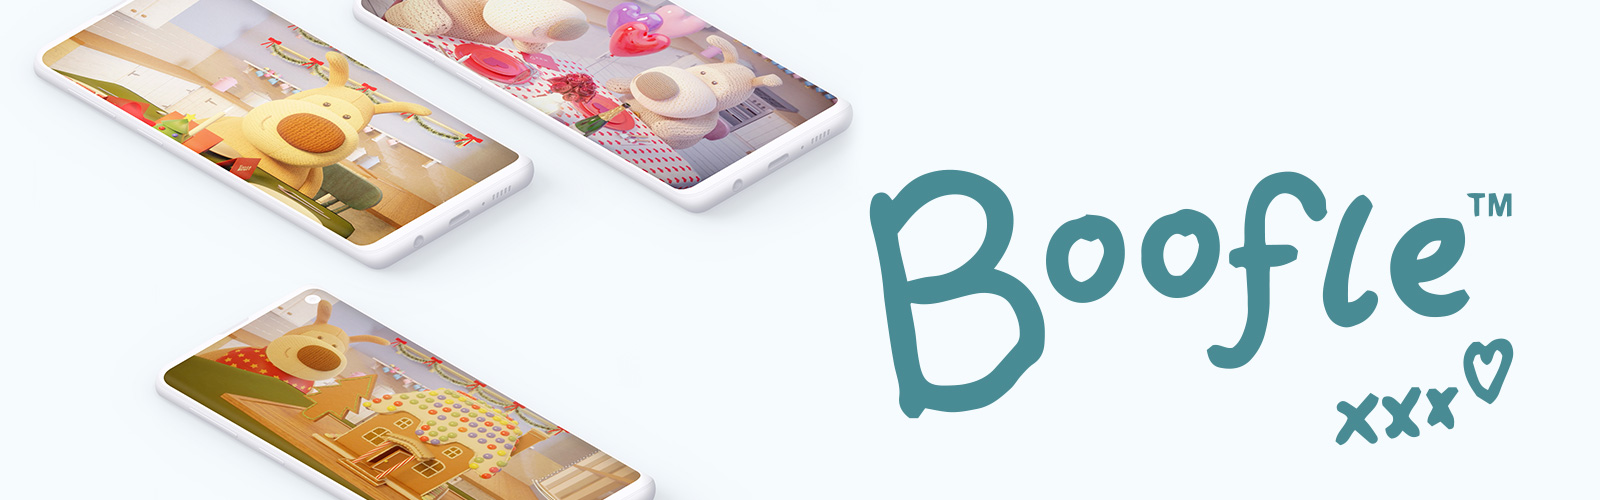 3 mobile devices showing 3 different Boofle 3D animations next to the Boofle logo